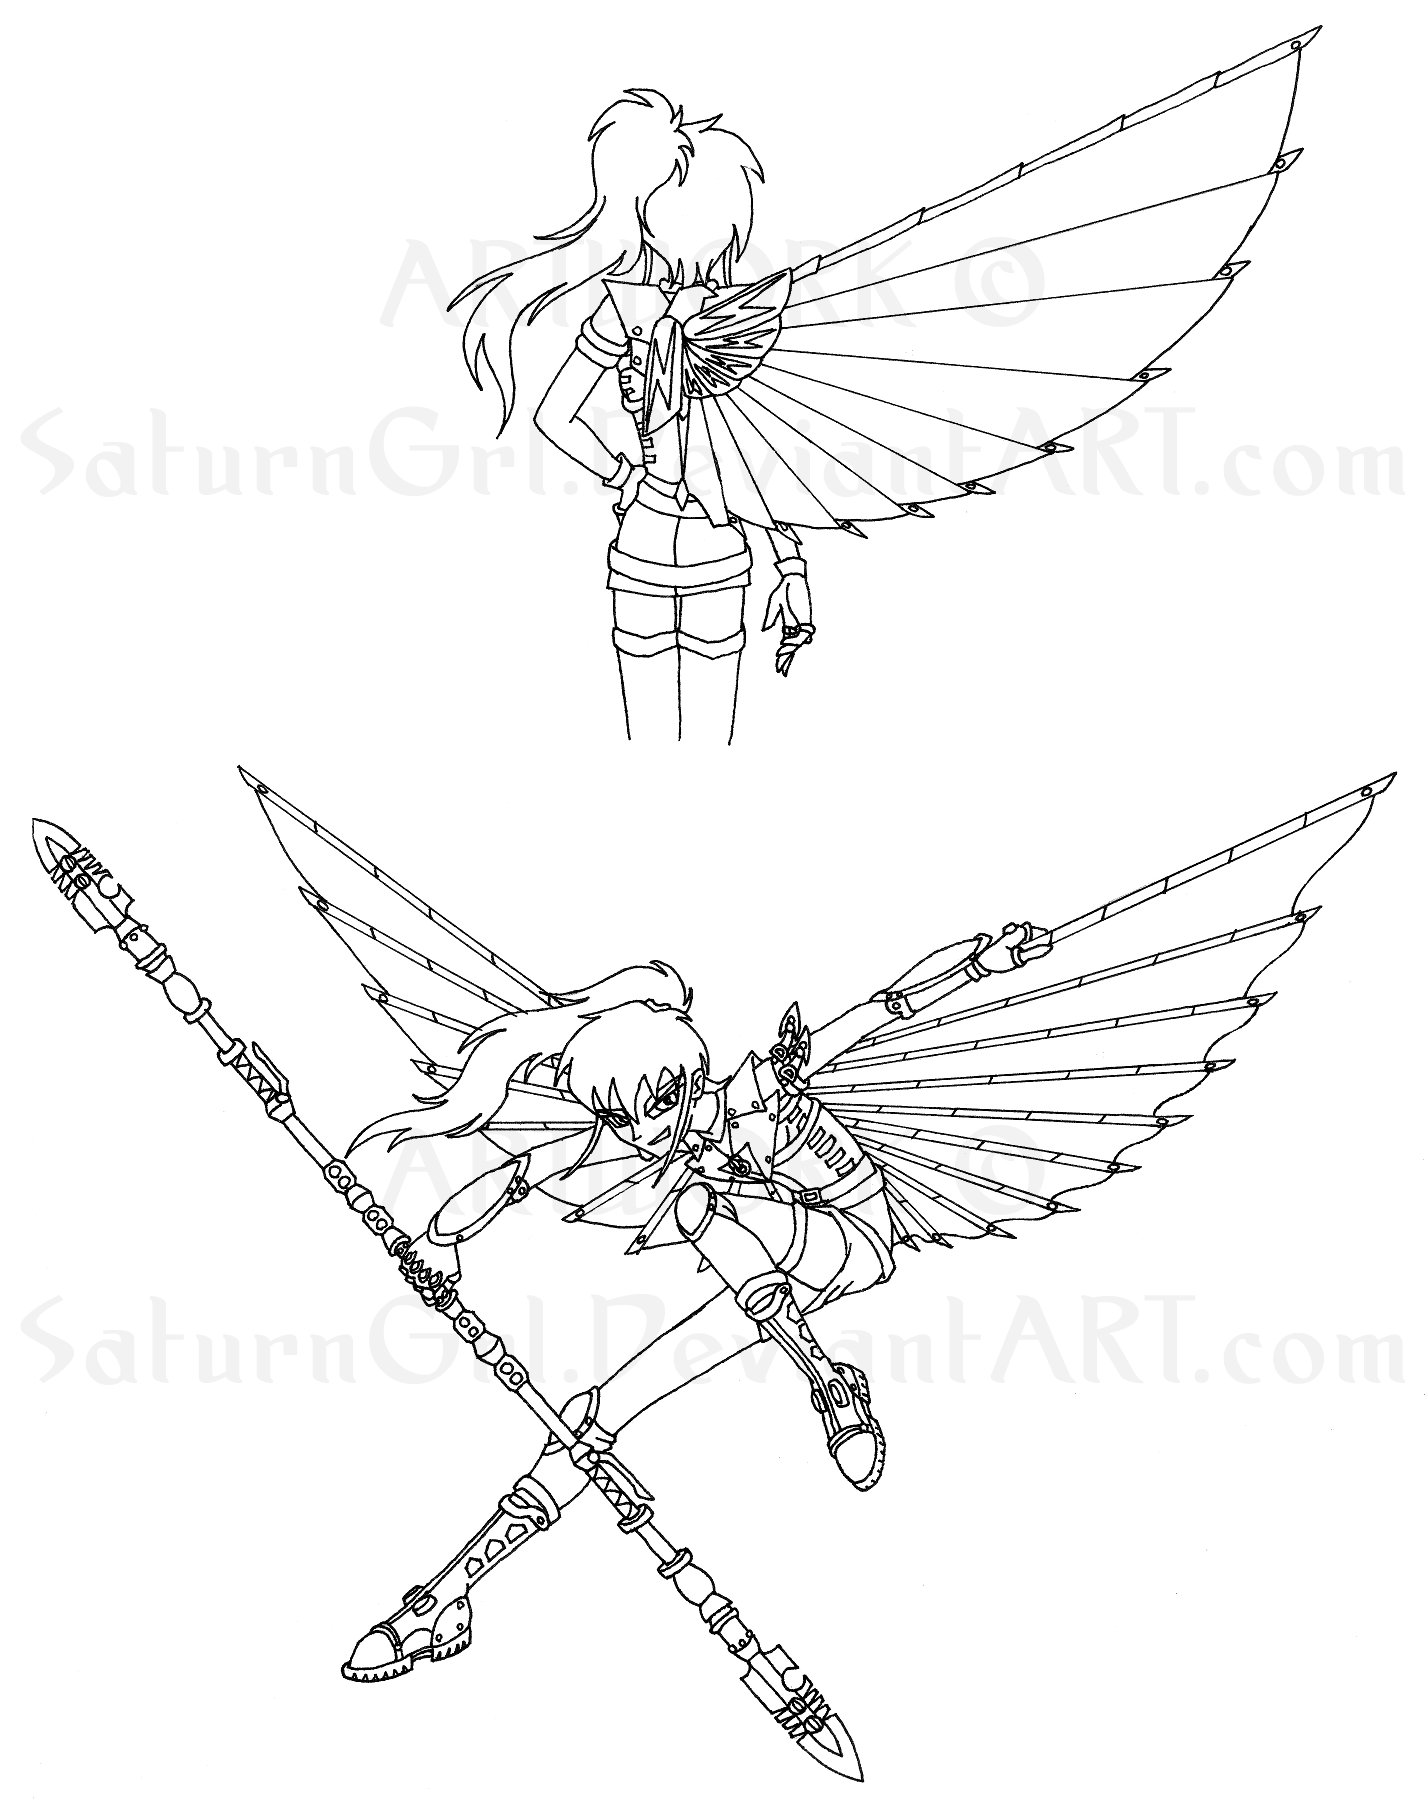 Glider Drawing at GetDrawings com | Free for personal use Glider